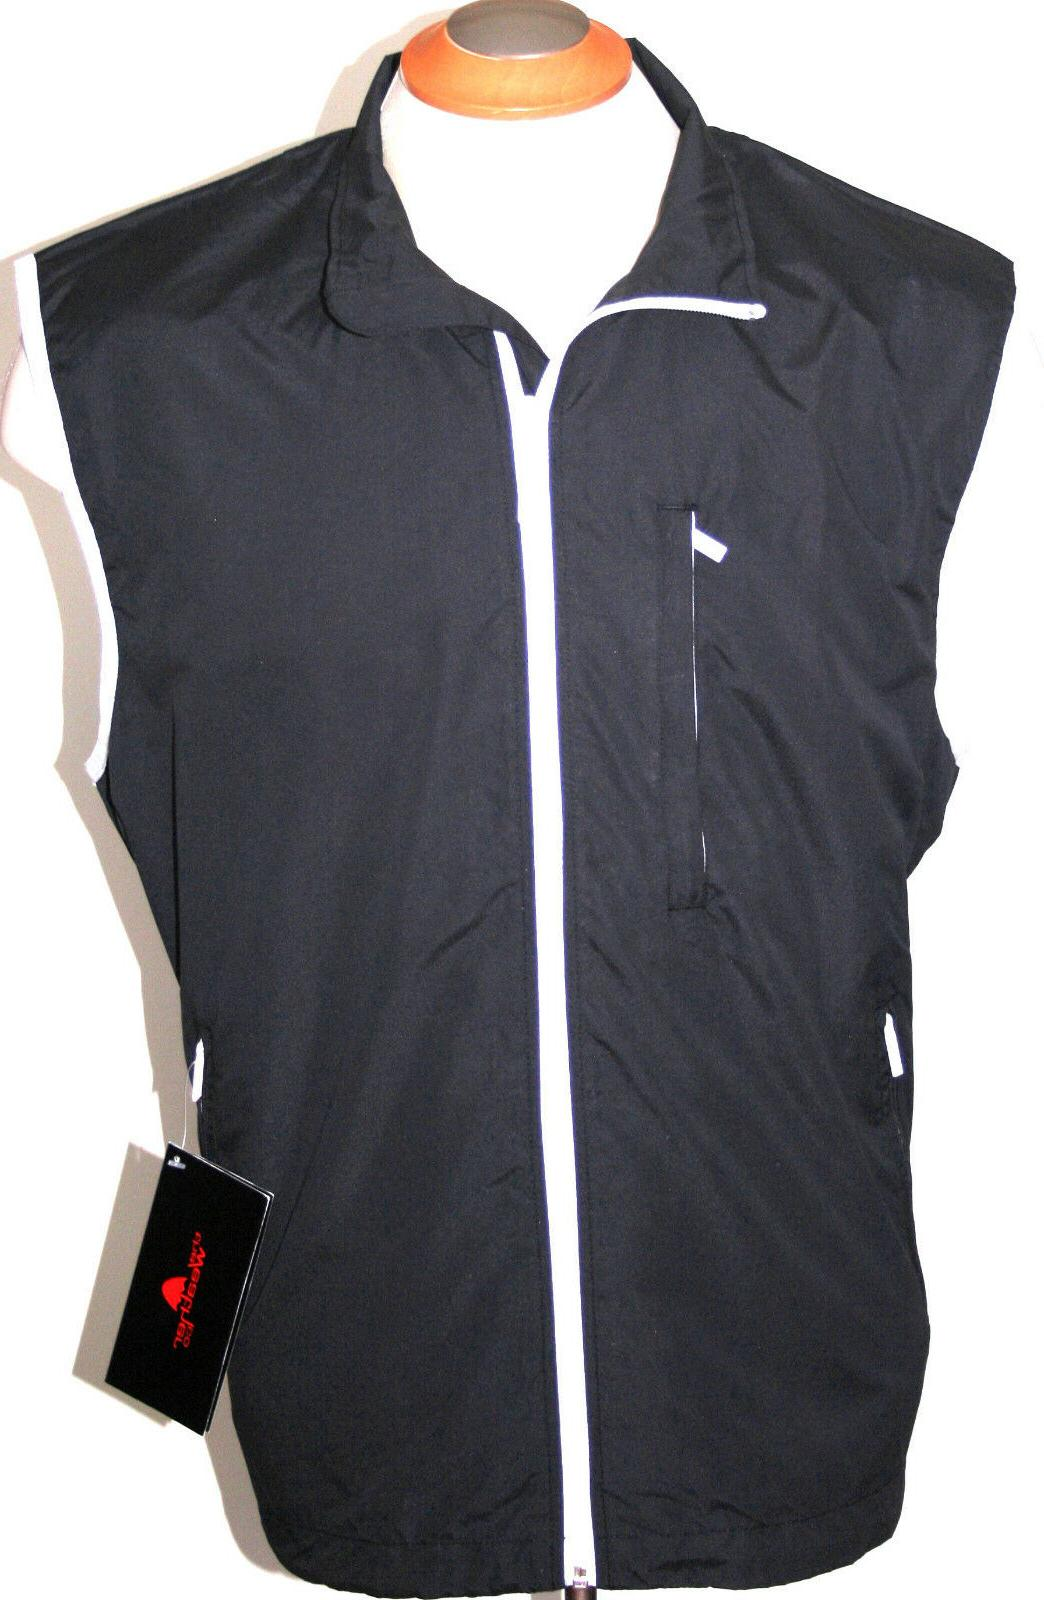 mens golf vest waterproof rain jacket black